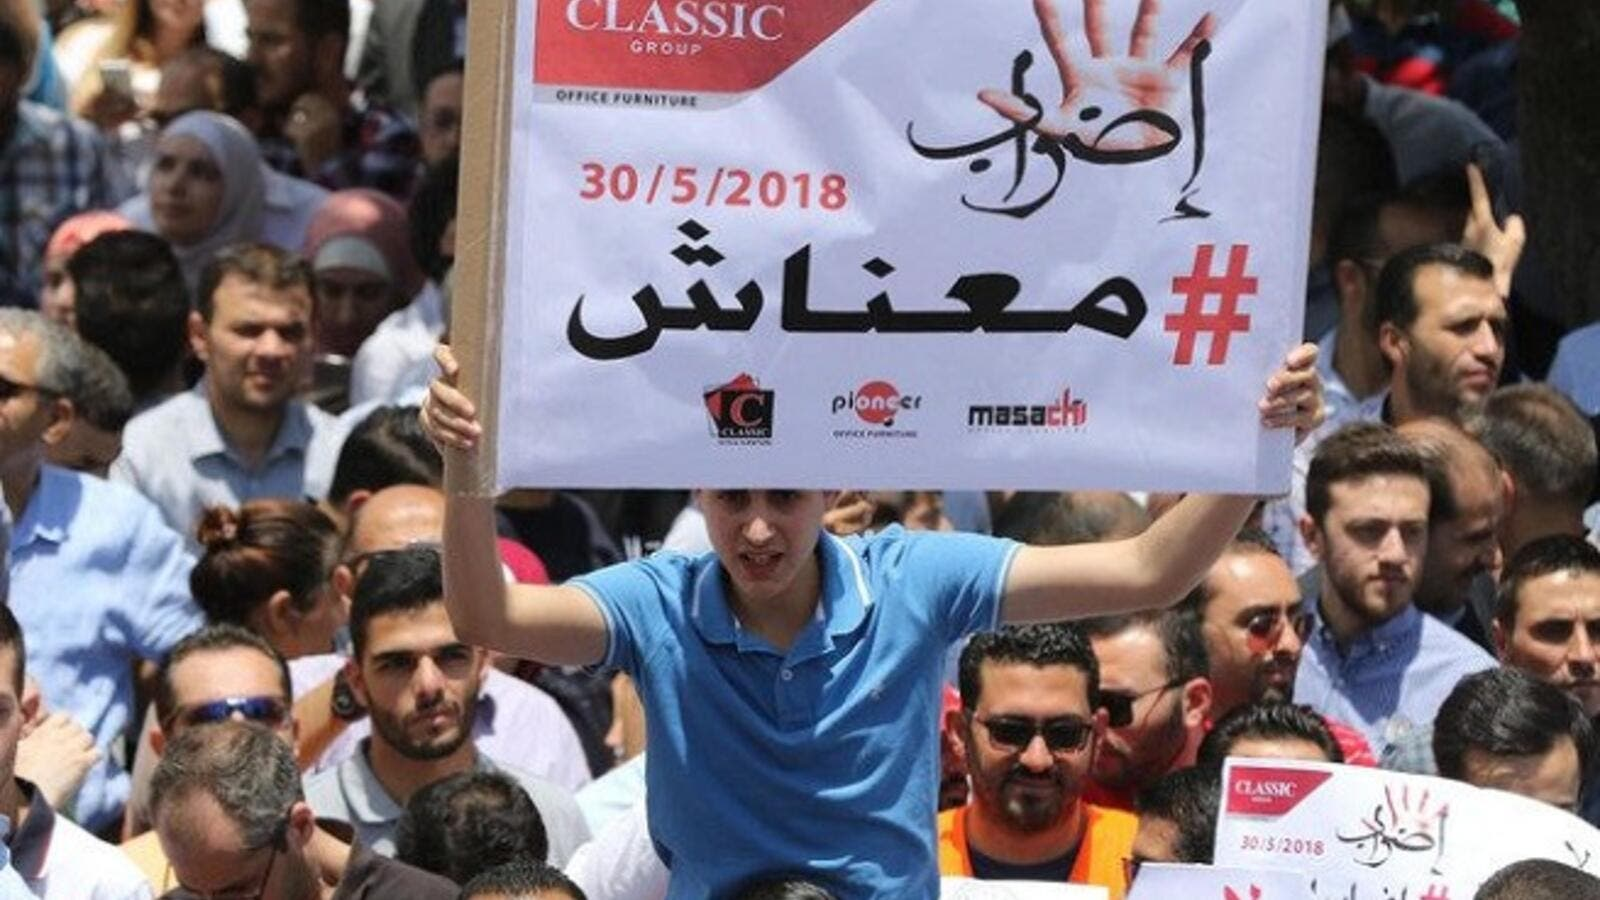 Thousands of Jordanians demonstrated against price increases, calling for 'toppling of government'. (DN Egypt)